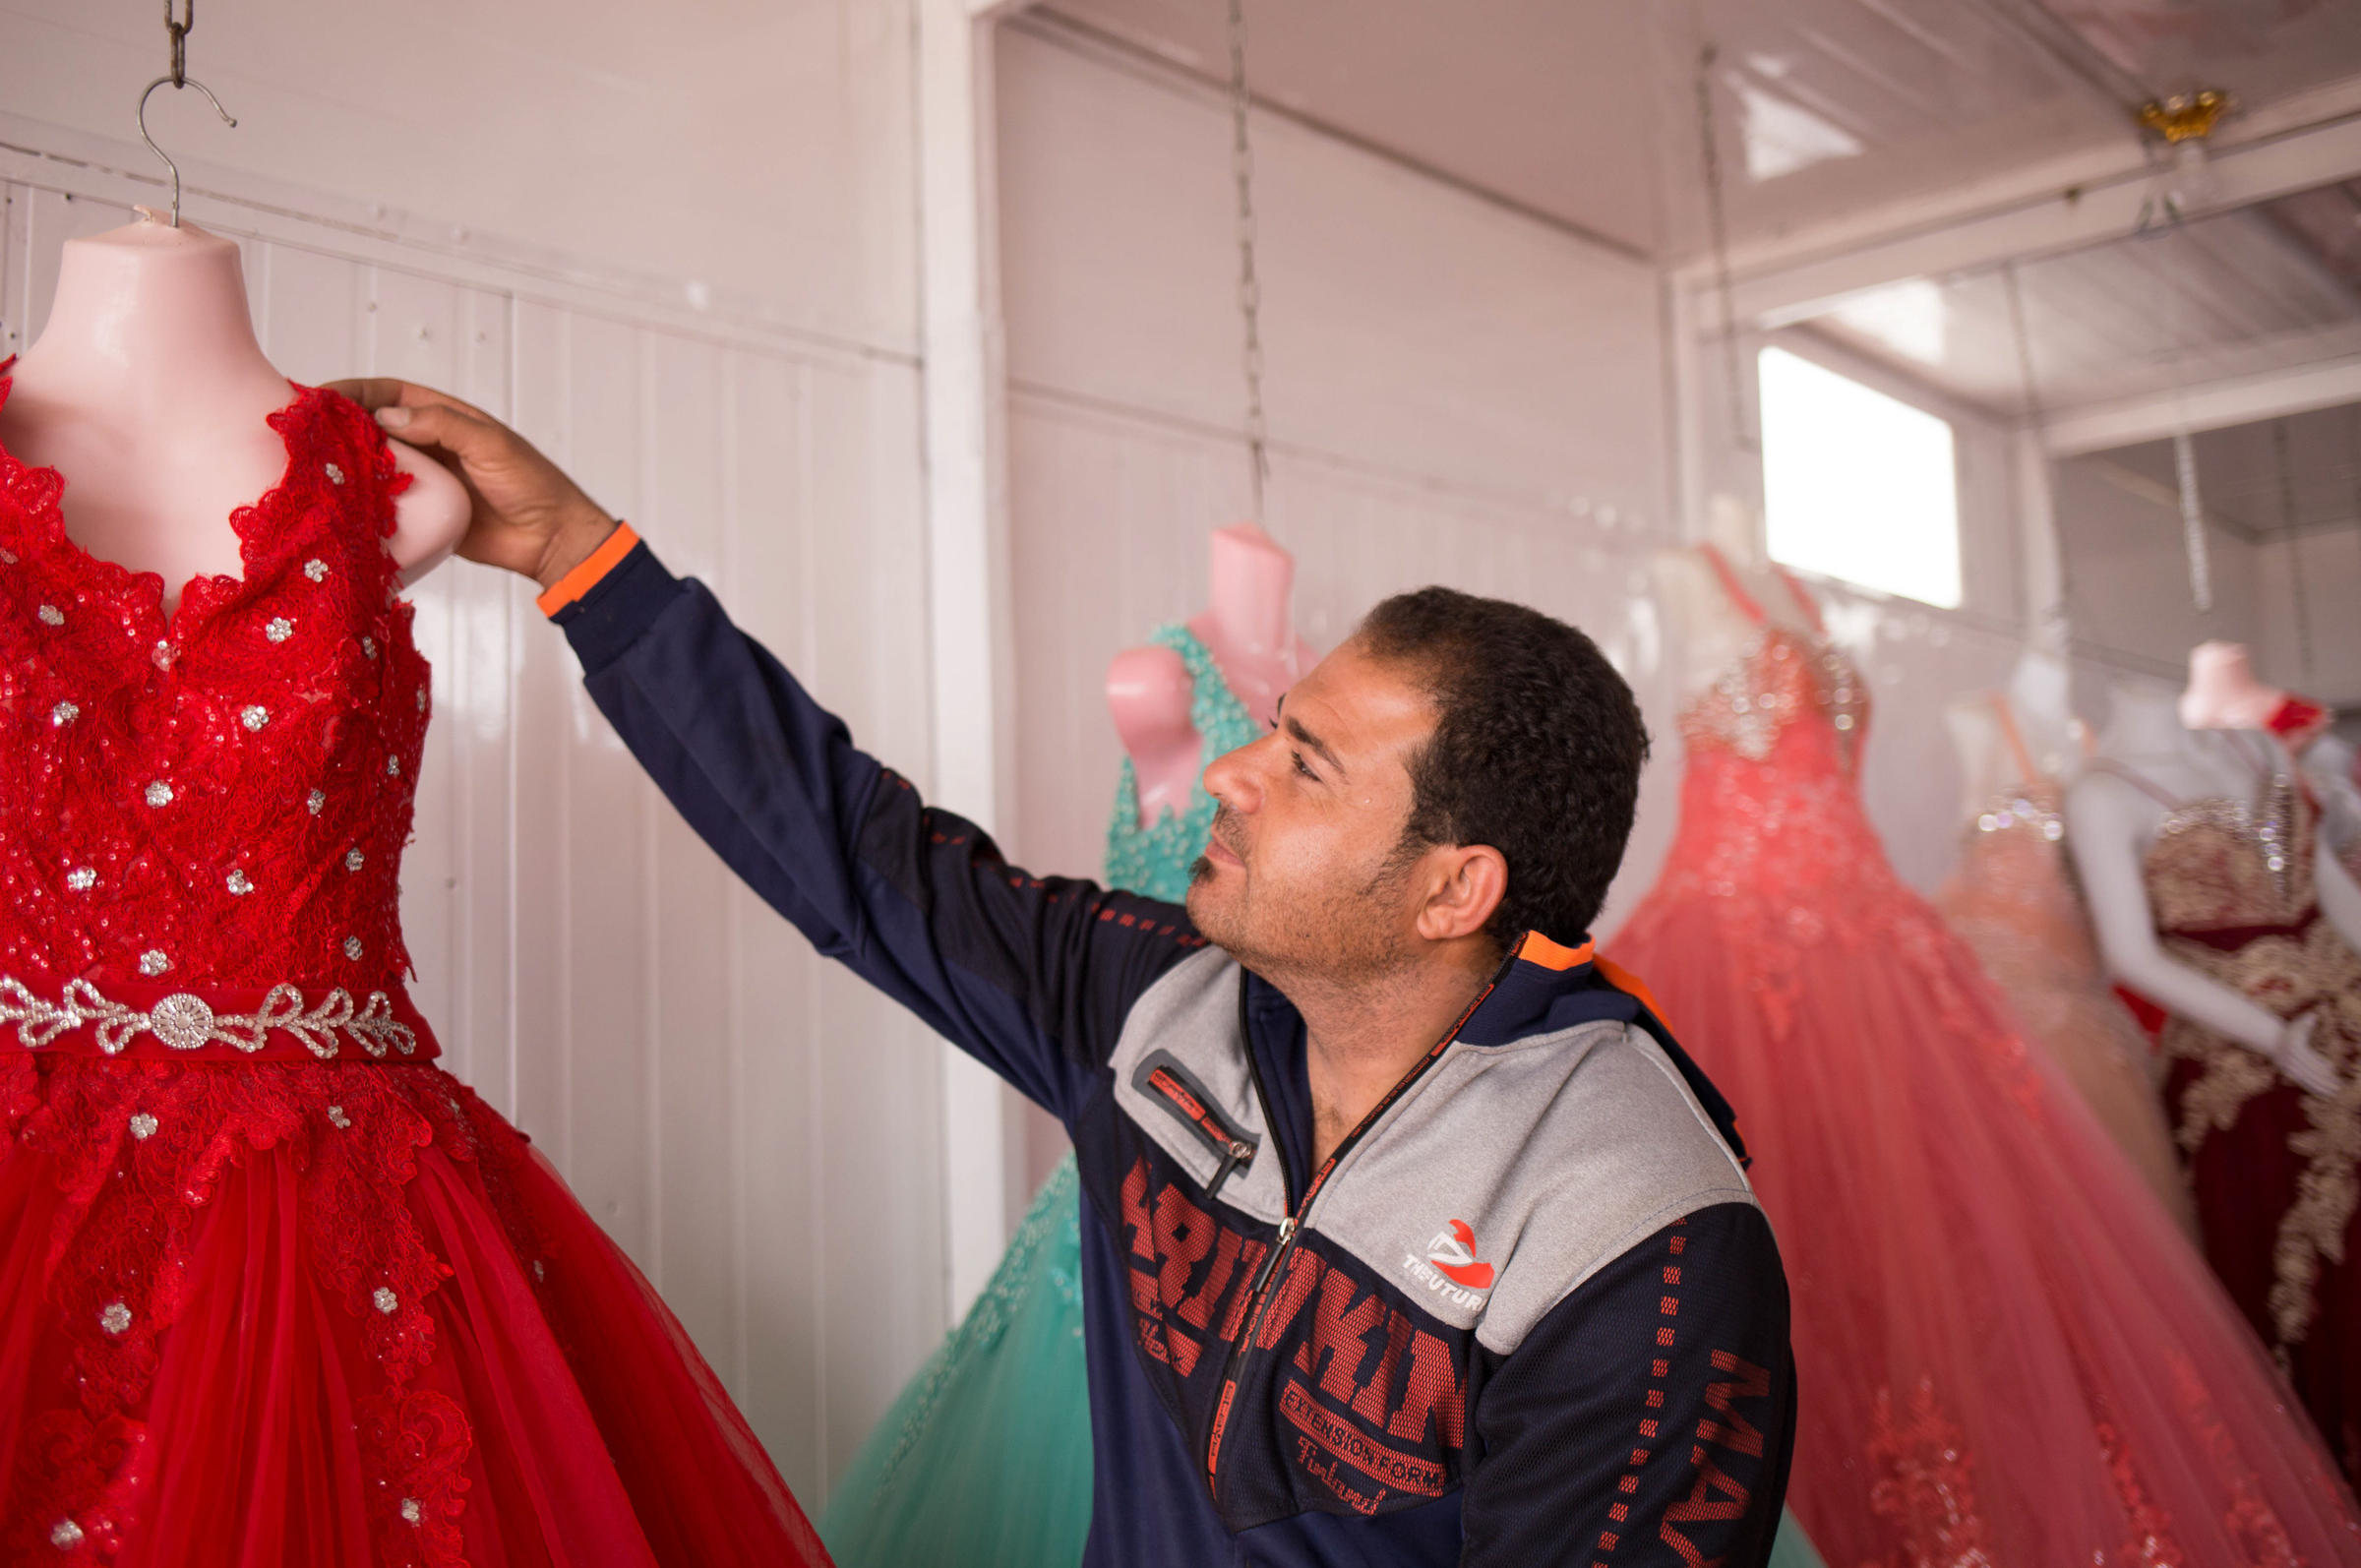 Refugees Say Yes To The Rental Wedding Dress | WYPR